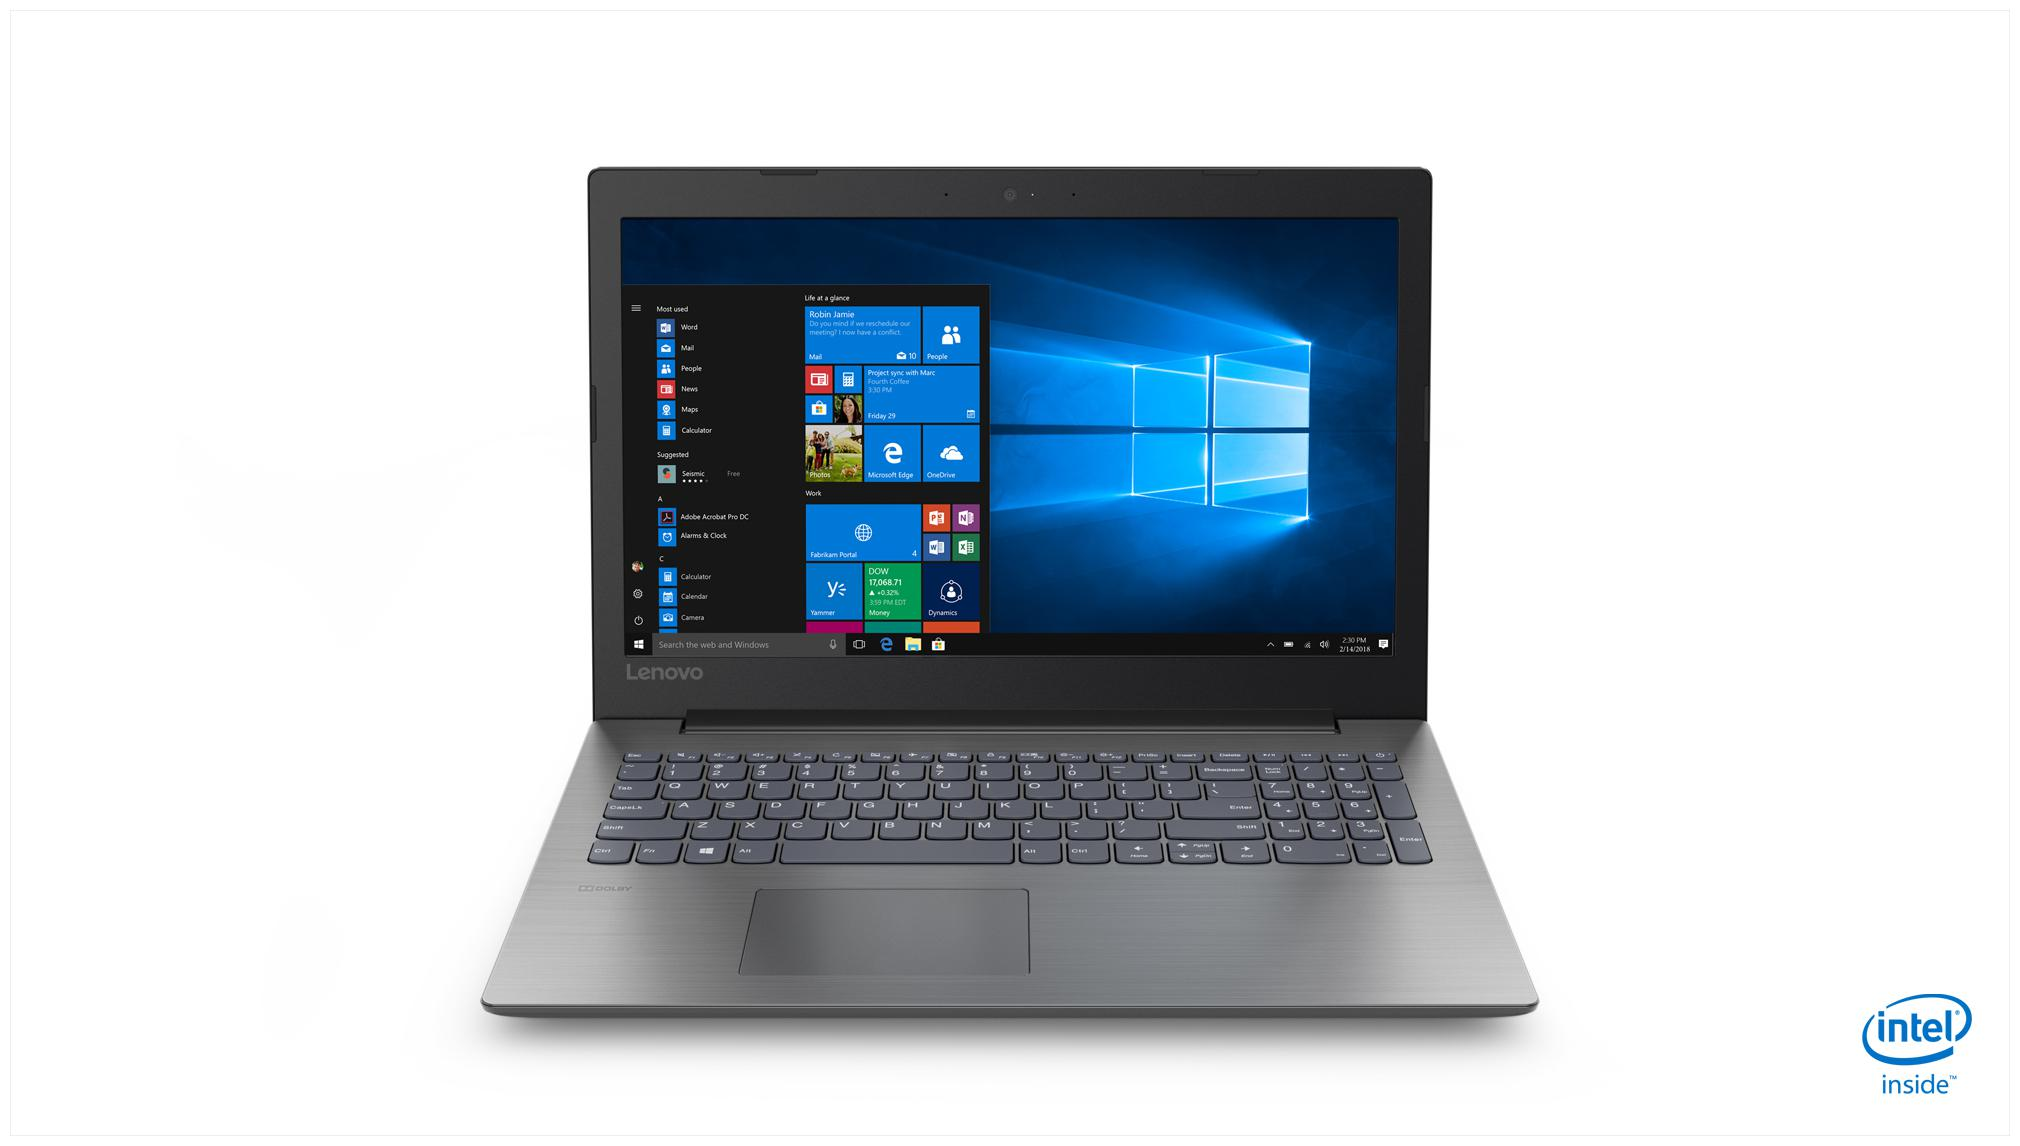 Lenovo Ideapad 330 (Core i5 - 8th Gen/8 GB RAM/1 TB HDD/39.62 cm (15.6 Inch) FHD/DOS) 81DE01Q6IN (Onyx Black , 2.2 Kg)